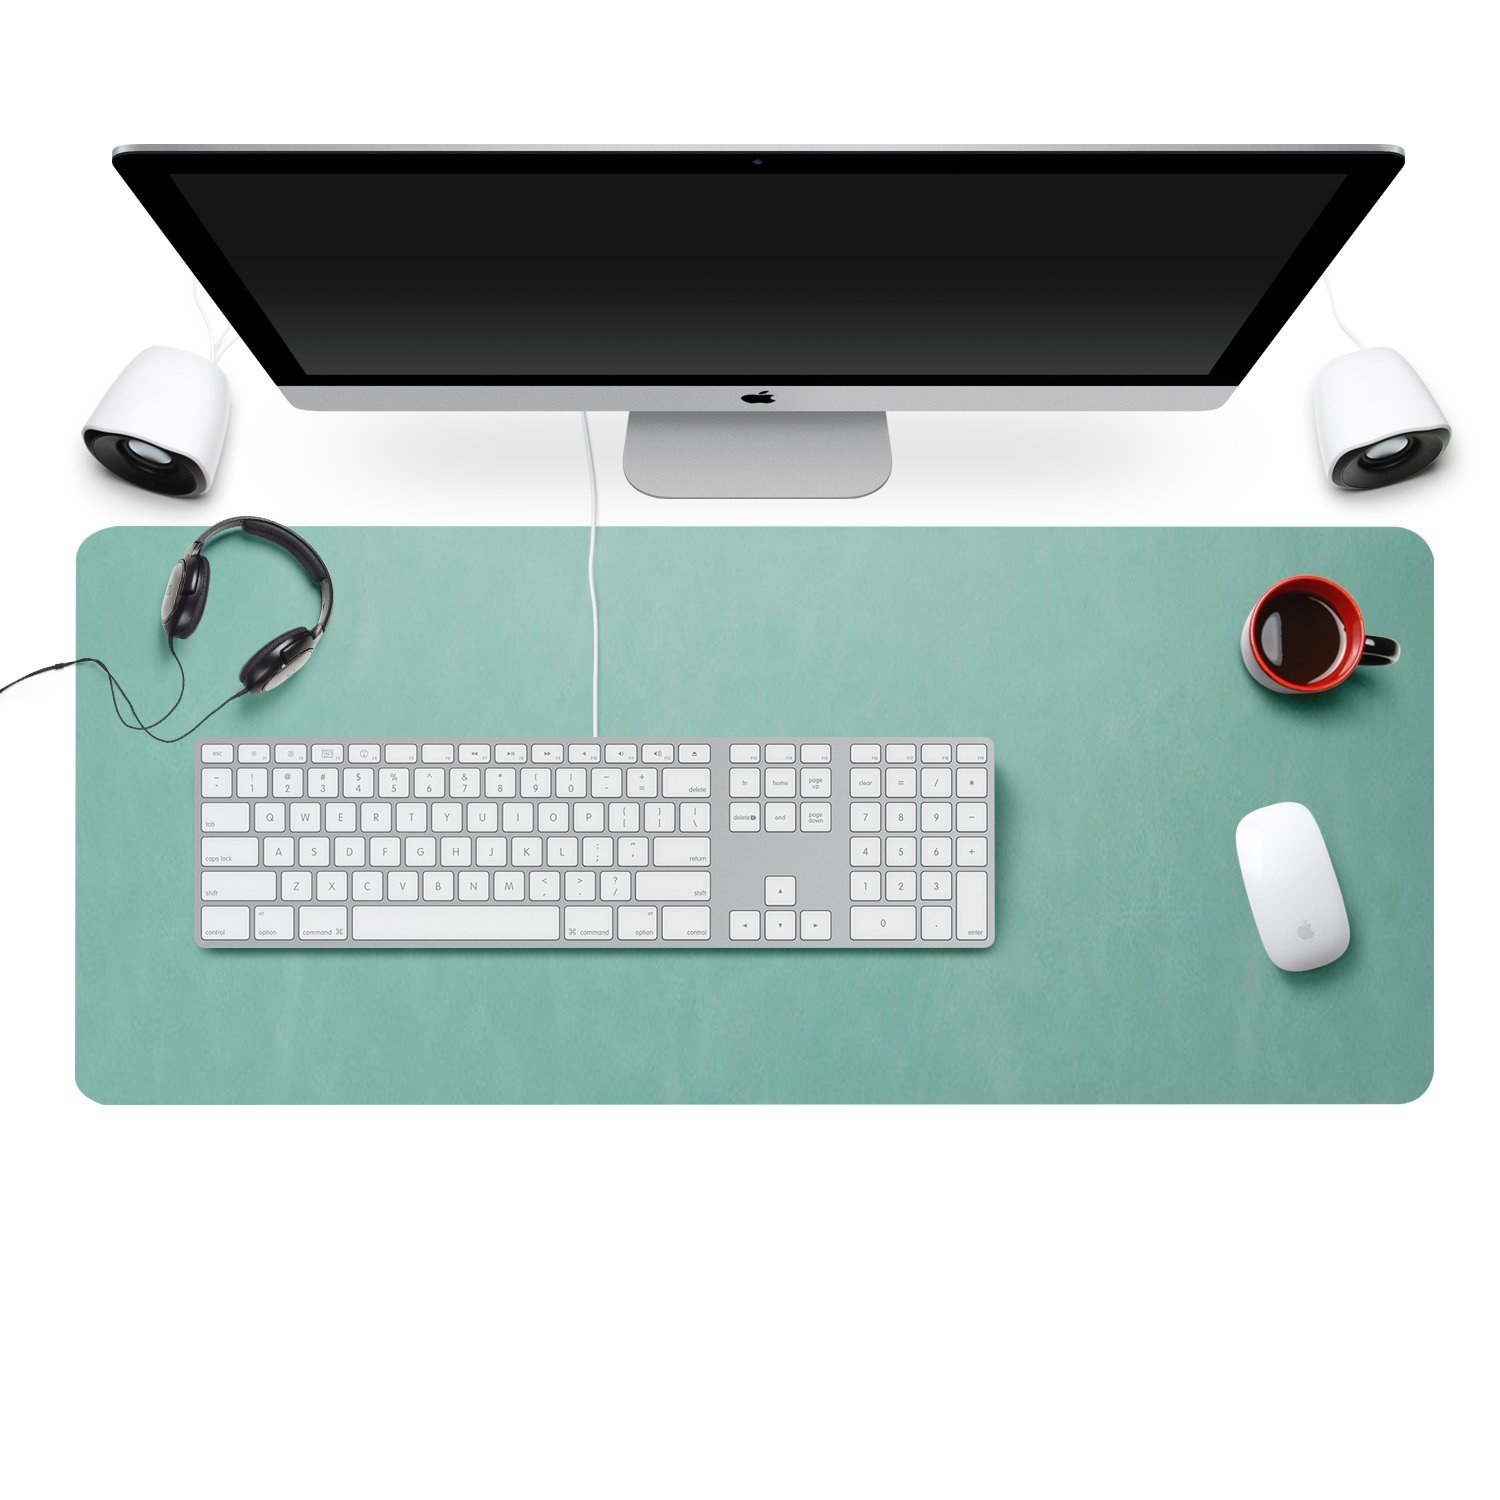 Zoohoo High Quantity Oversized 31.5''x15.7'' Artificial Leather Desk Pad - Non-Slip Smooth Mouse Pad Writing Desk Mate Protective Mat for Office, Home, School,Gaming, Working (Mint Green)